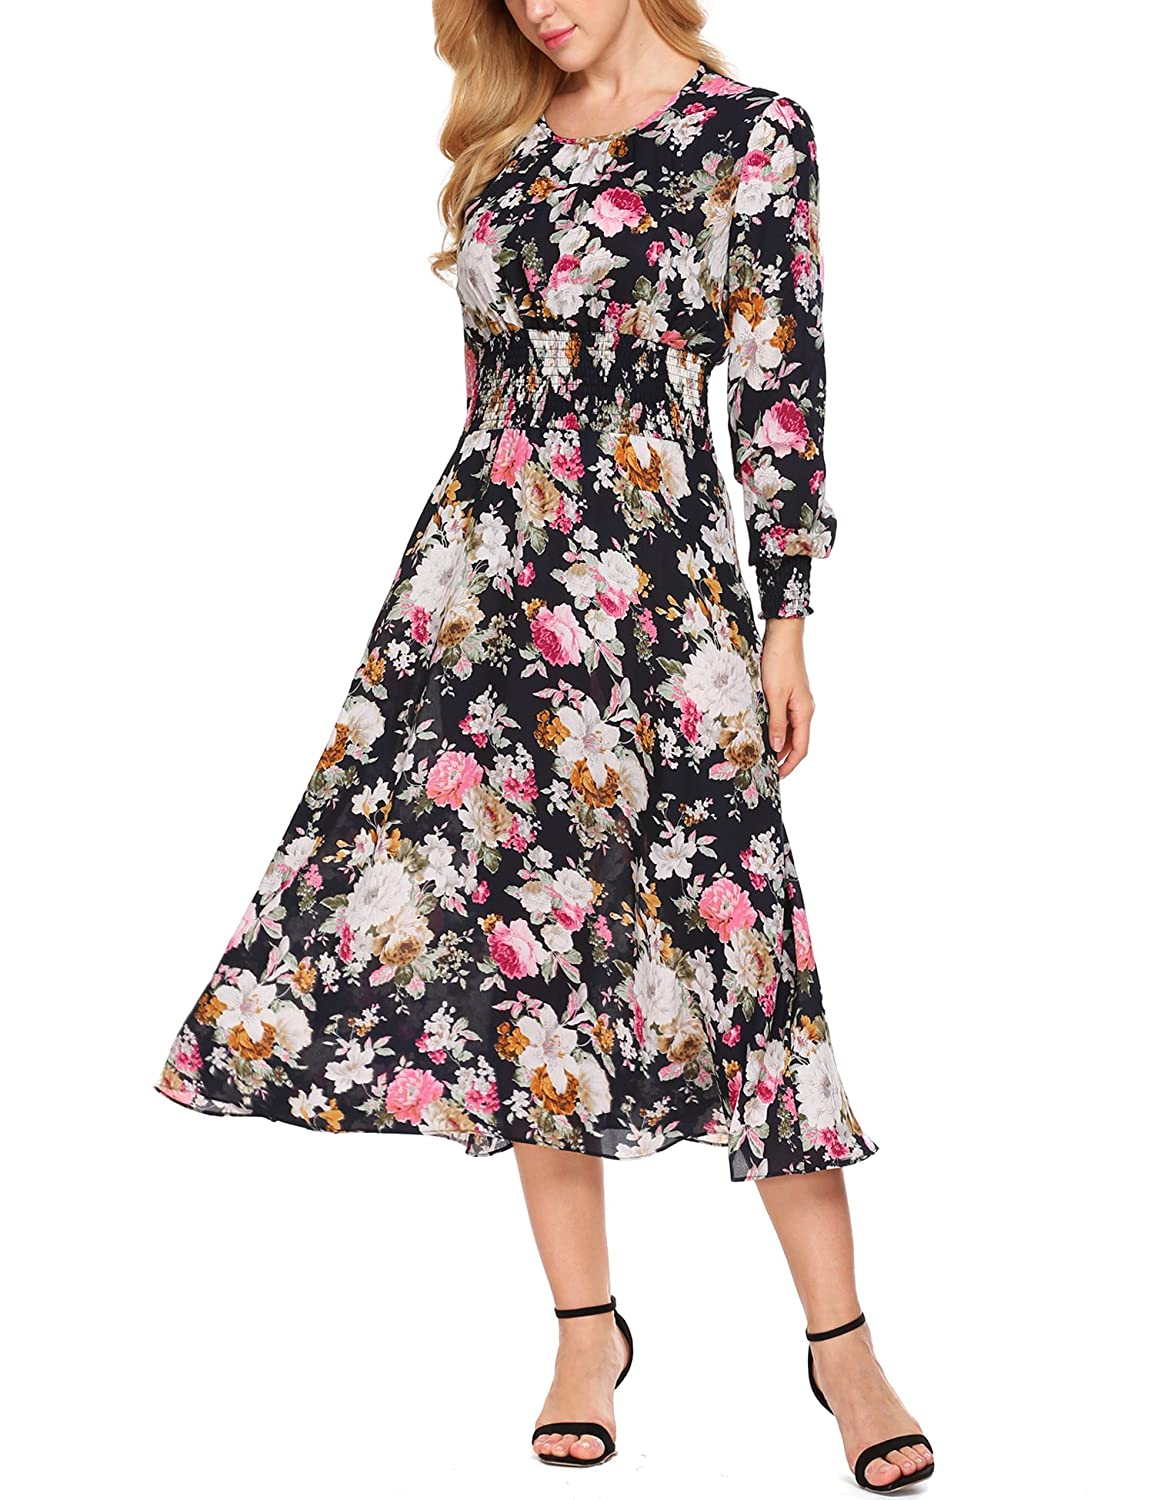 55084f4d7f930 Amazon.com: Zeagoo Women Chiffon O-Neck Long Sleeve Floral Print Long Maxi  Party Beach Dress: Clothing